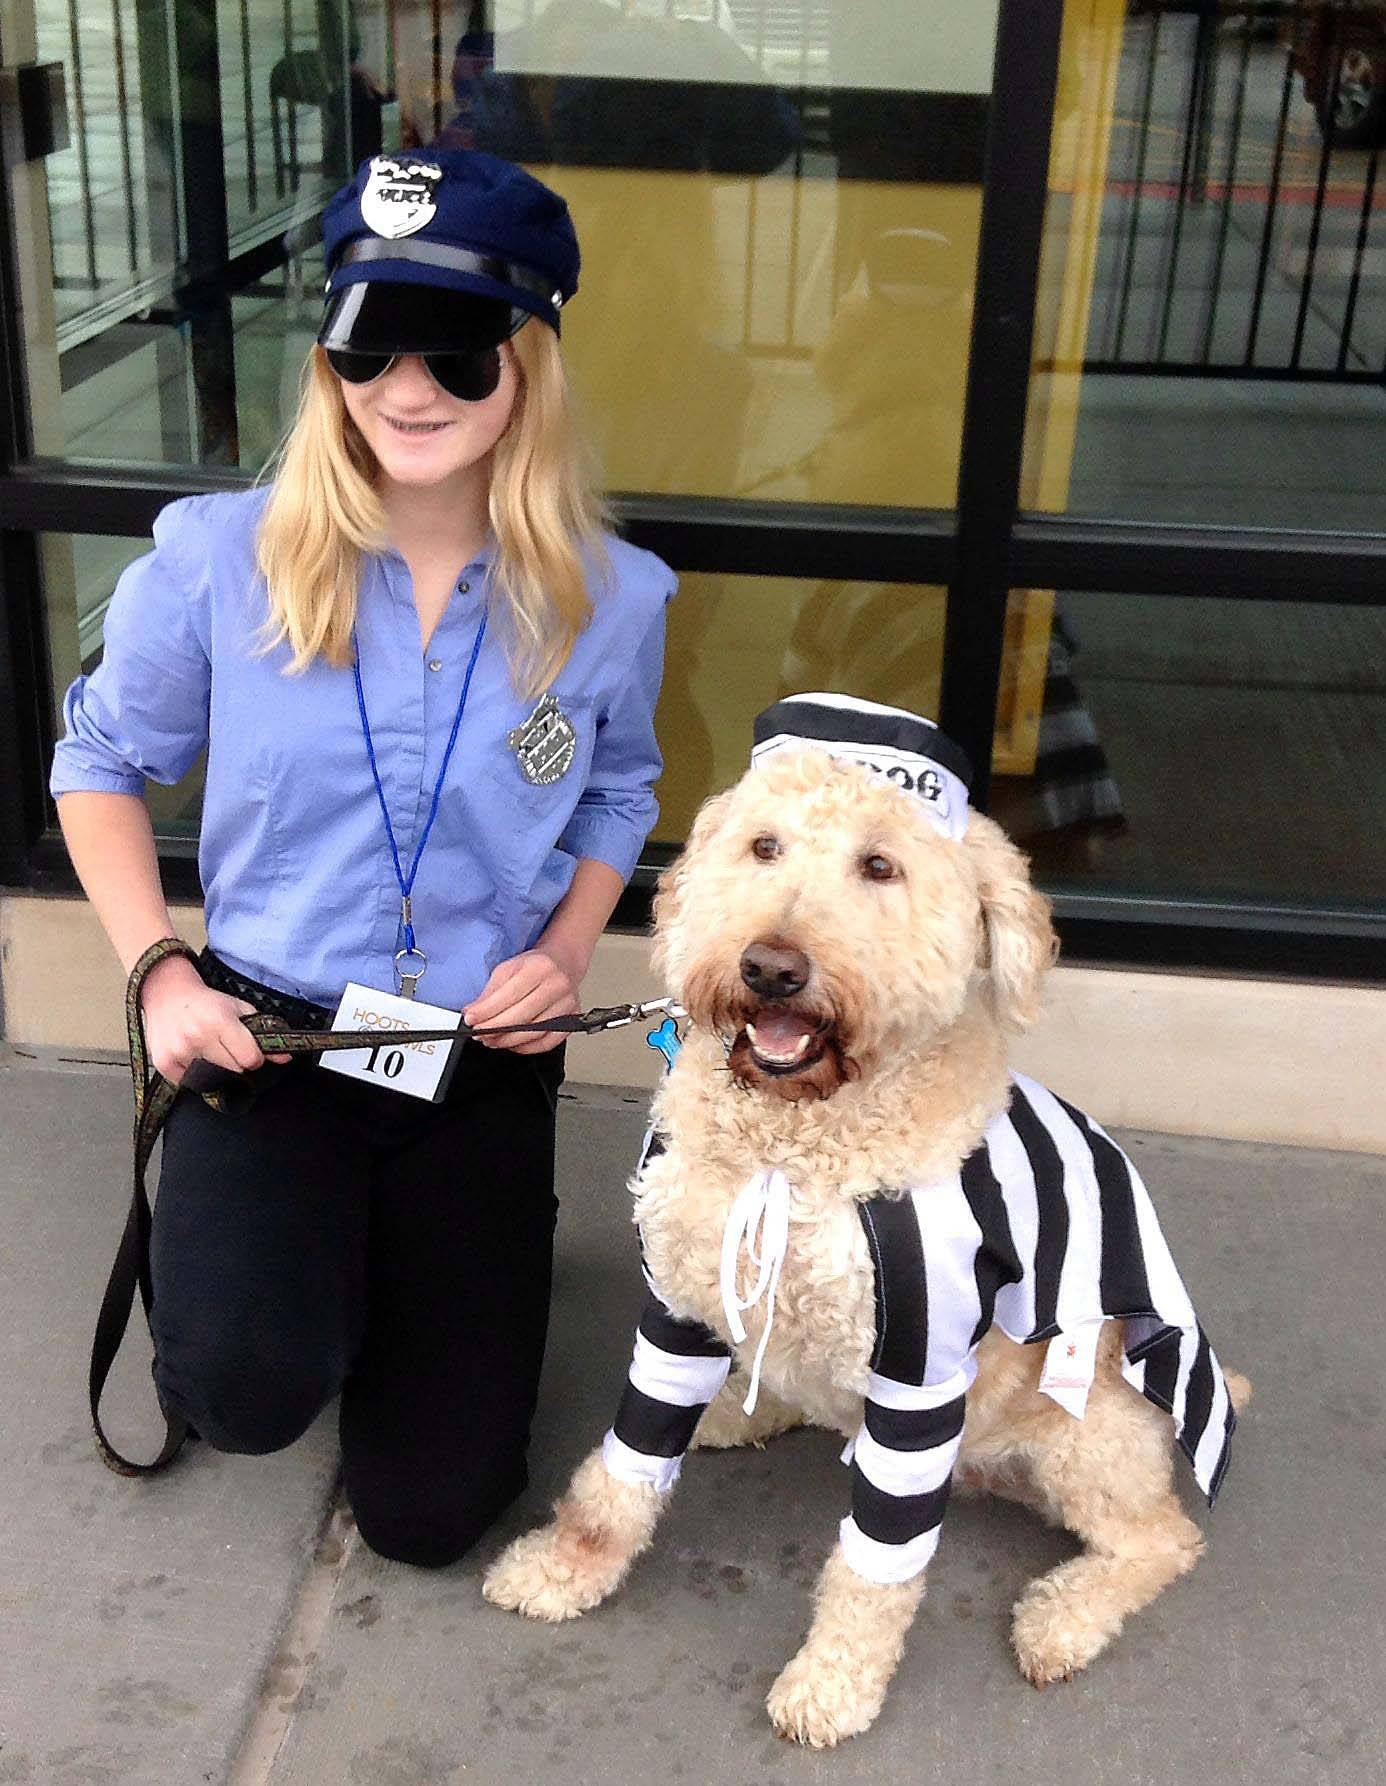 This good cop and bad dog took top honors in a pet parade costume contest Saturday at Randhurst Village in Mount Prospect. Megan McNally, 13, of Arlington Heights said her dog, Cody, makes a perfect prison inmate.